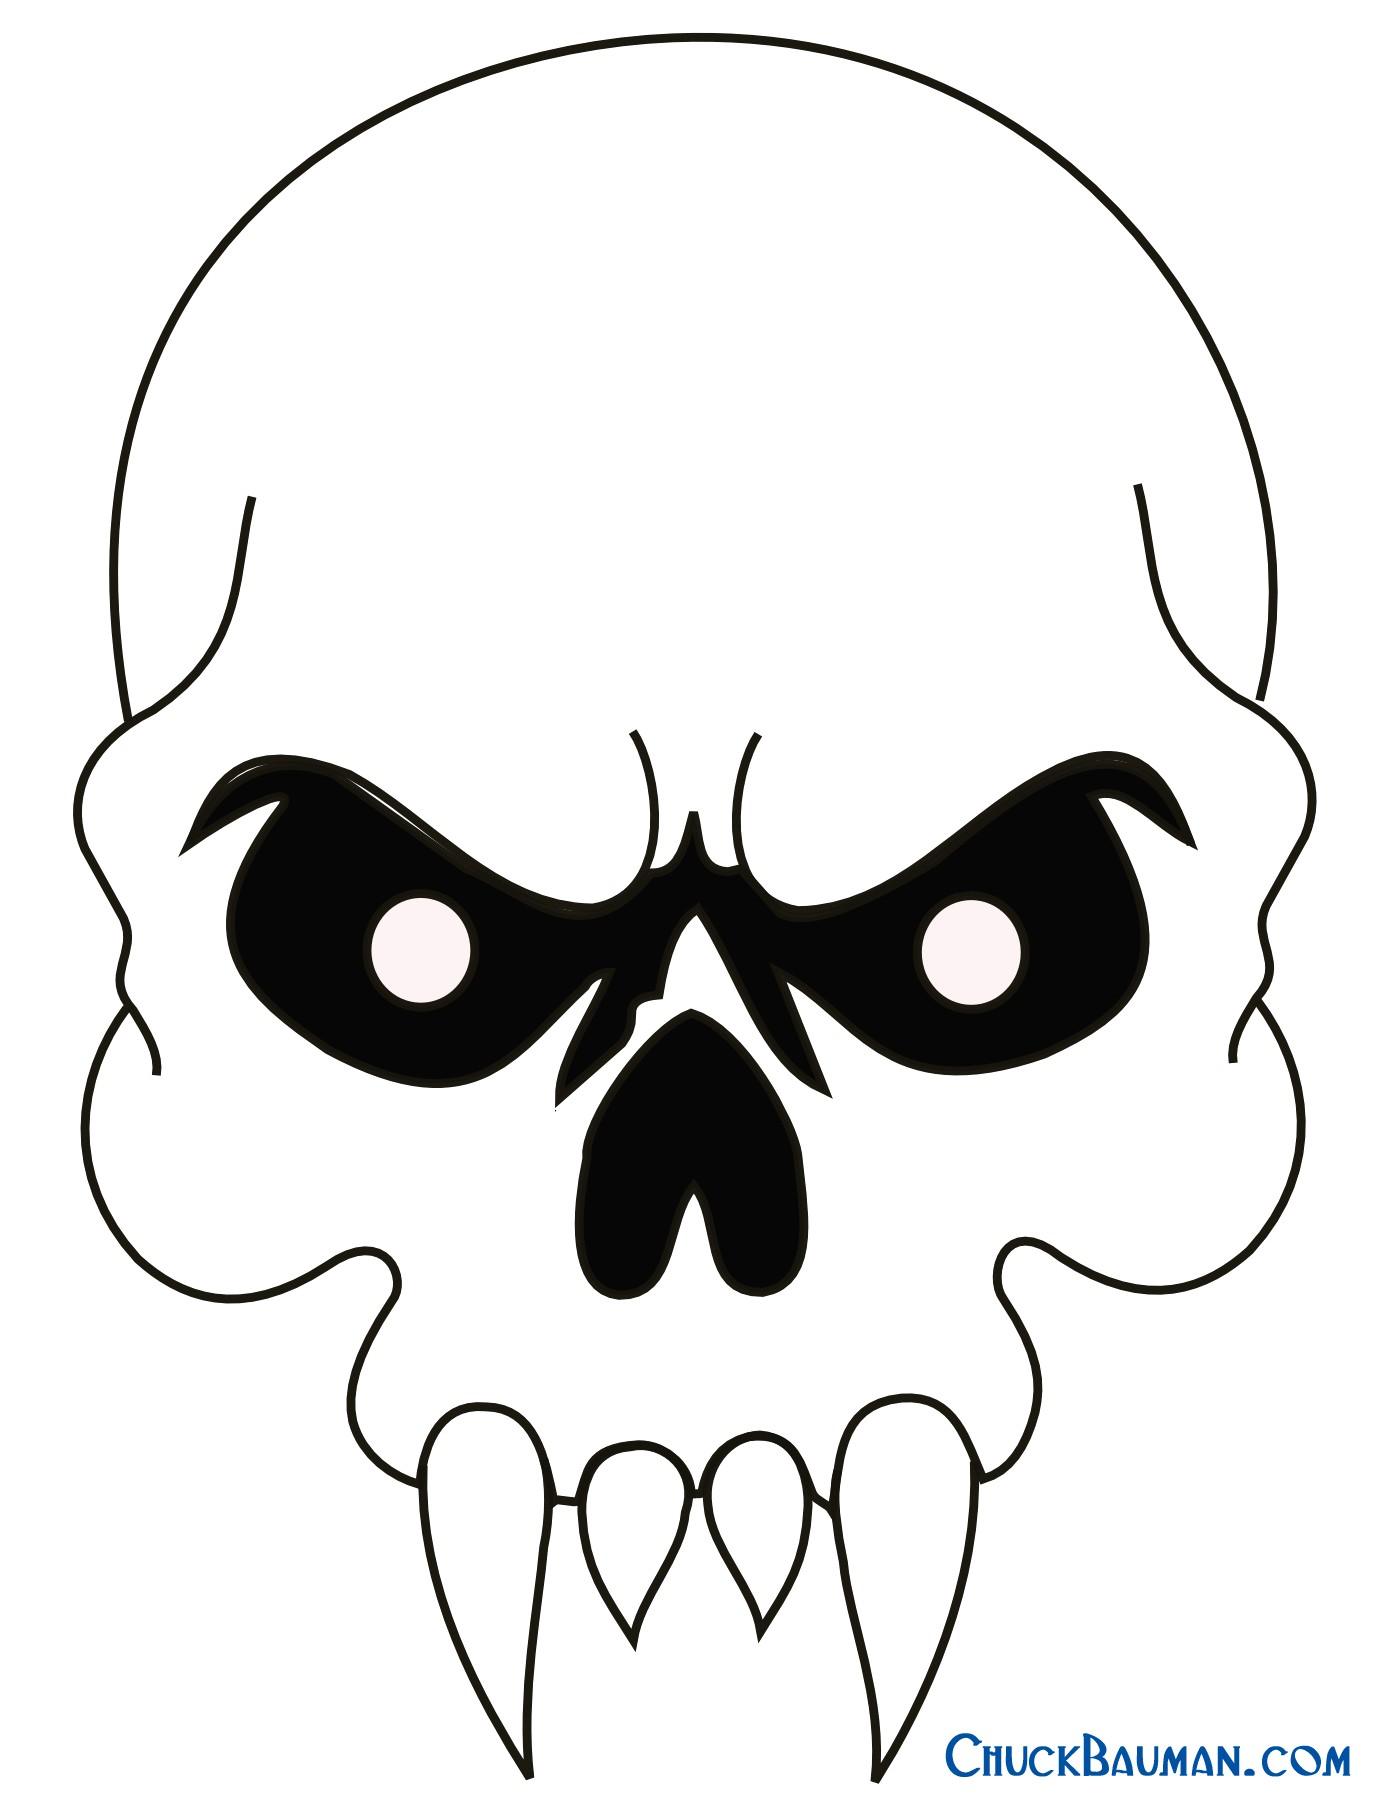 1383x1808 How To Draw A Simple Skull Easy Drawings Free Download Clip Art